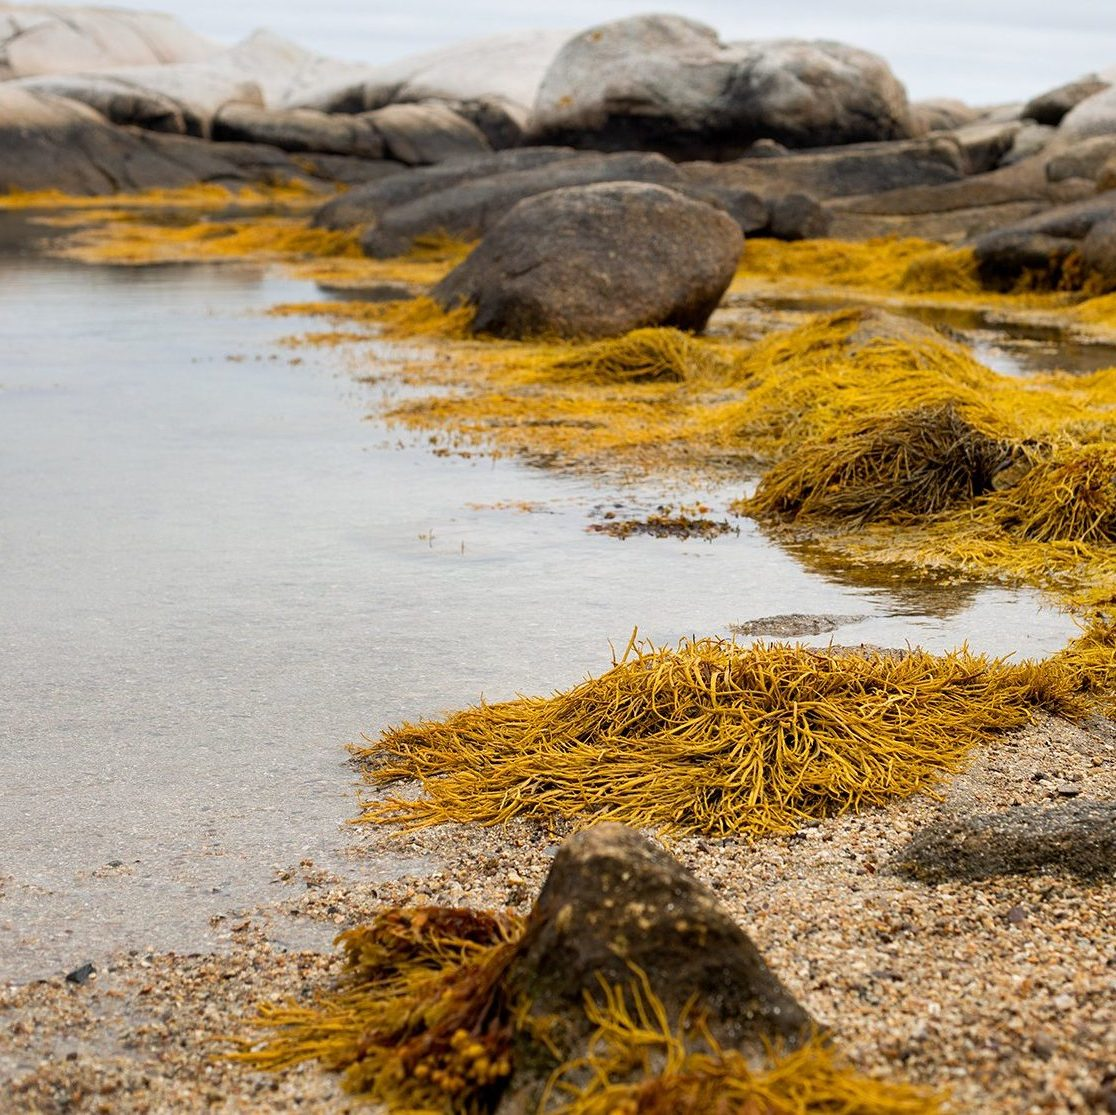 The Carrageenan Controversy: Busting the Myth